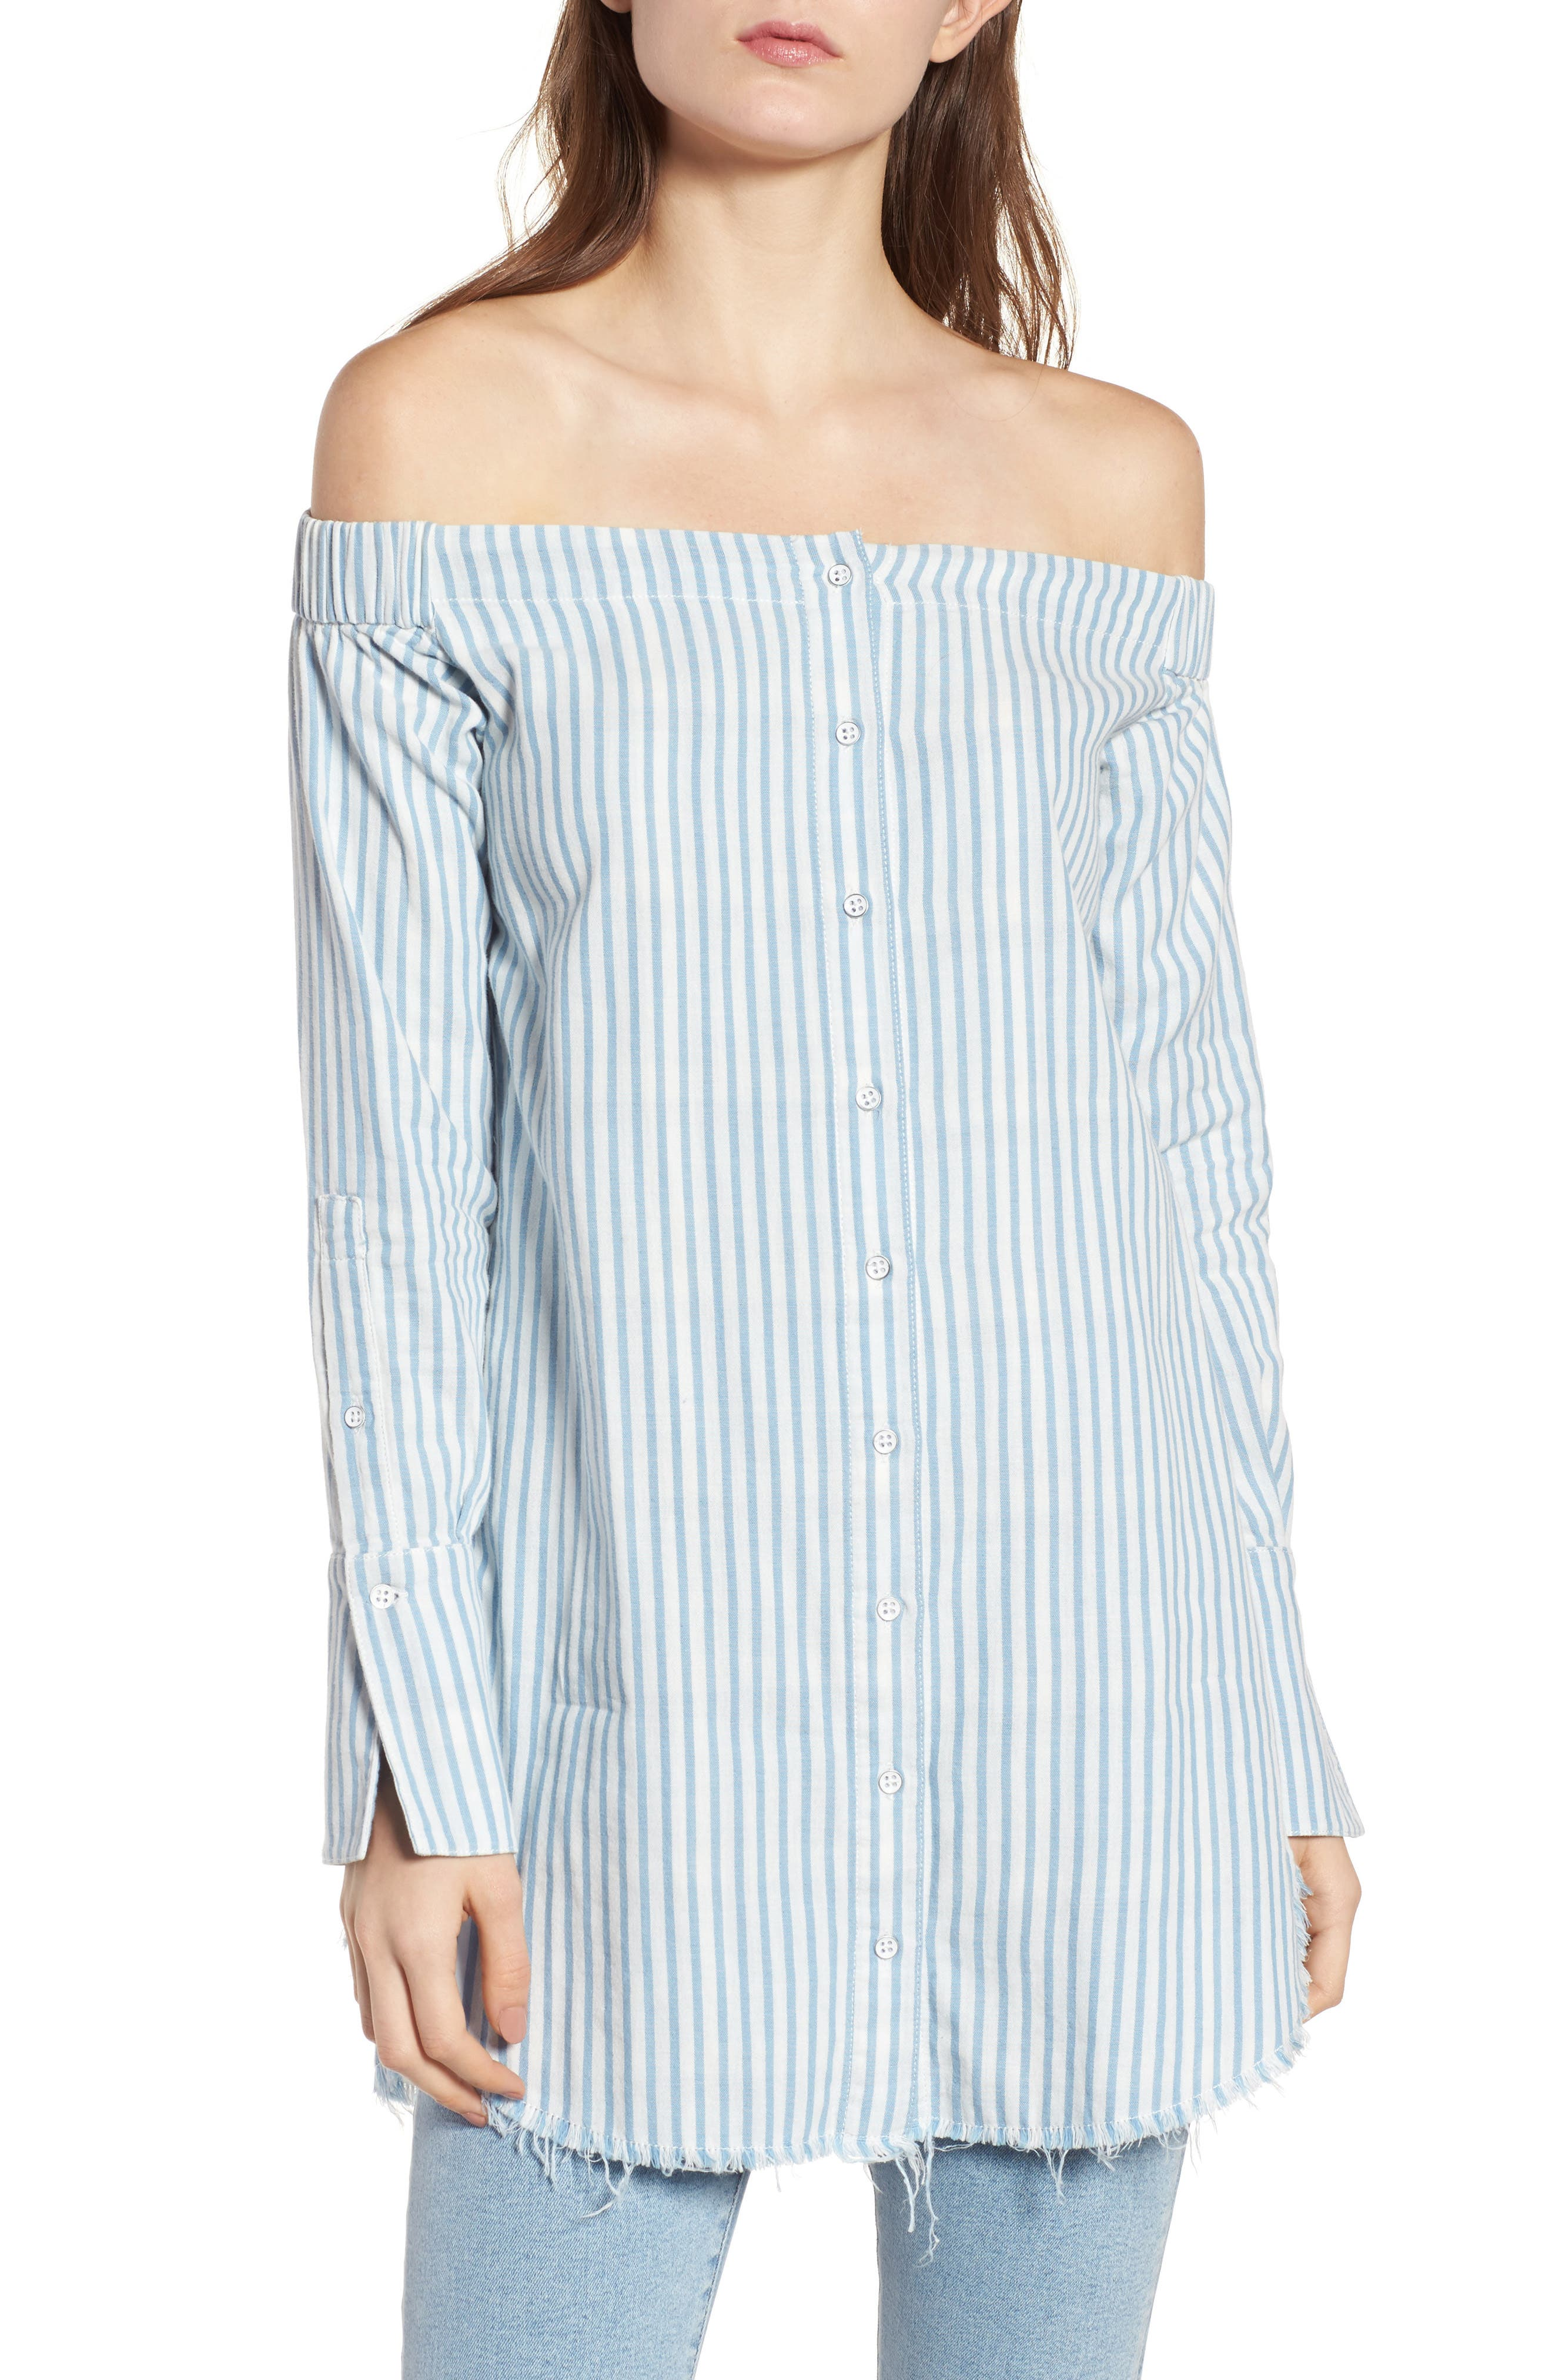 Adelphi & Willoughby Off the Shoulder Shirt,                         Main,                         color, 430